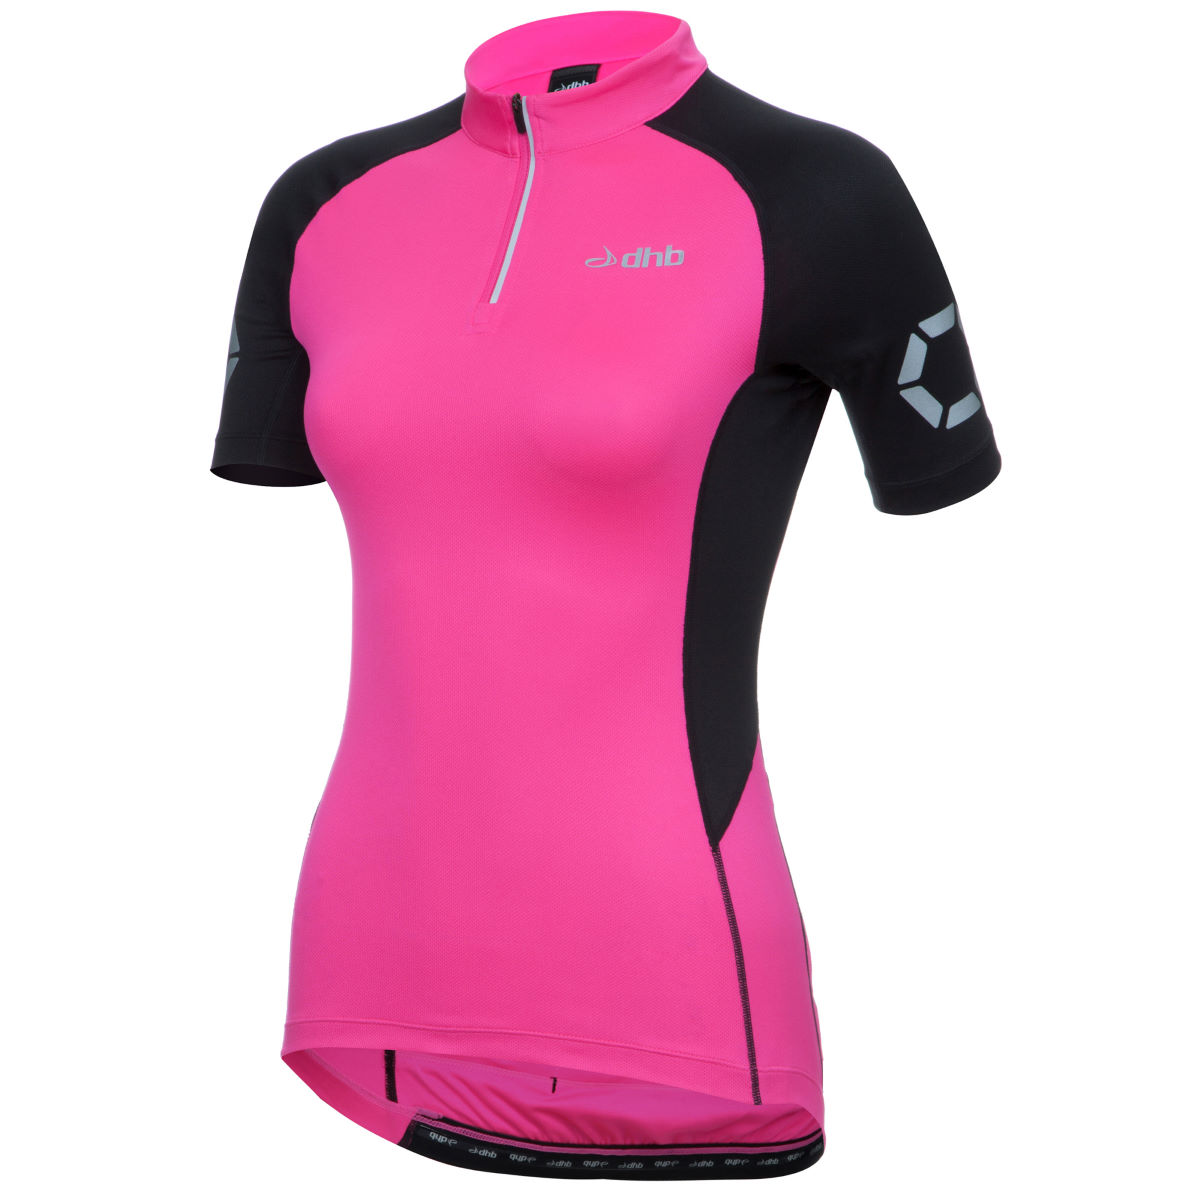 Maillot Femme dhb Flashlight (manches courtes) - 8 UK Rose Maillots